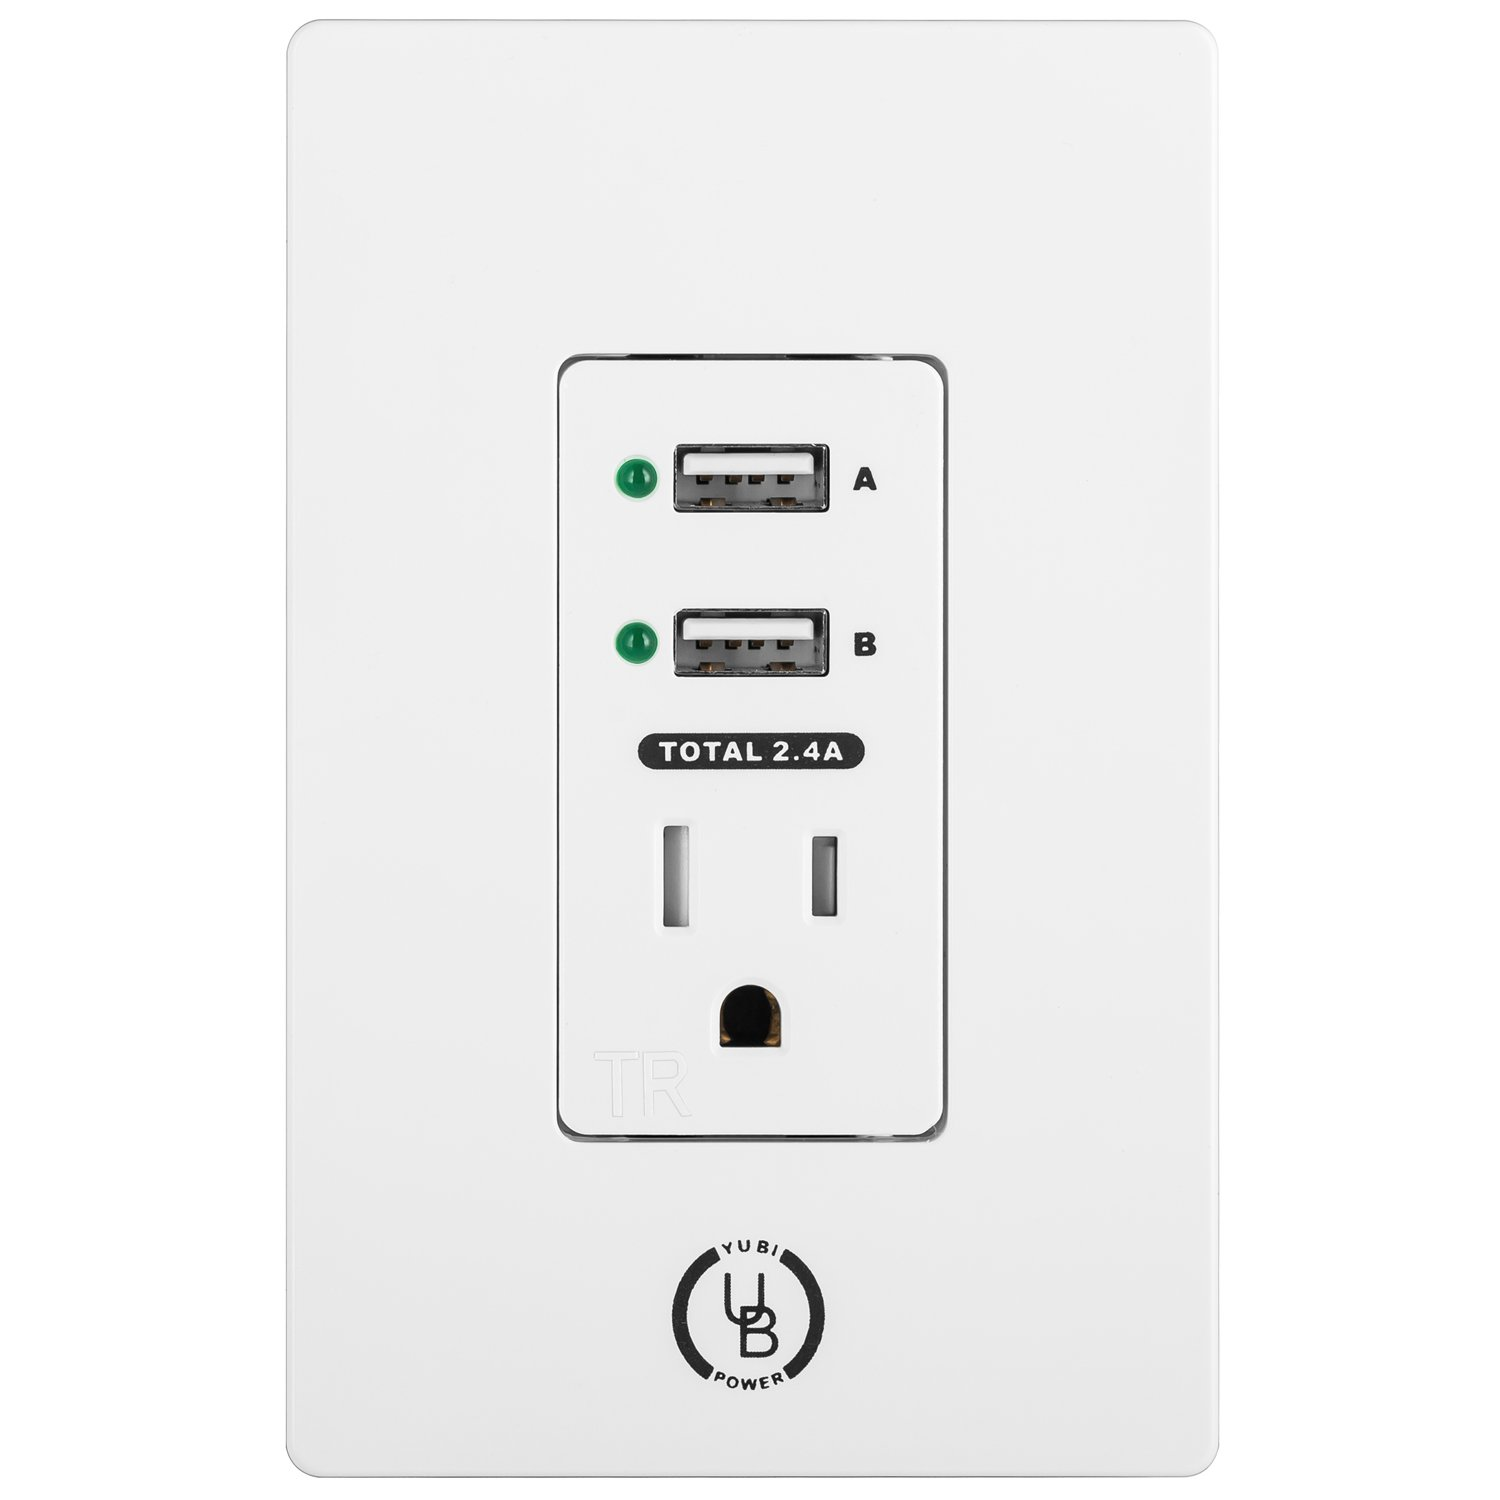 Yubi Power 2.4A Dual USB Wall Outlet 15A Tamper Resistant Receptacle AC Outlet Wall Plate - UL Listed